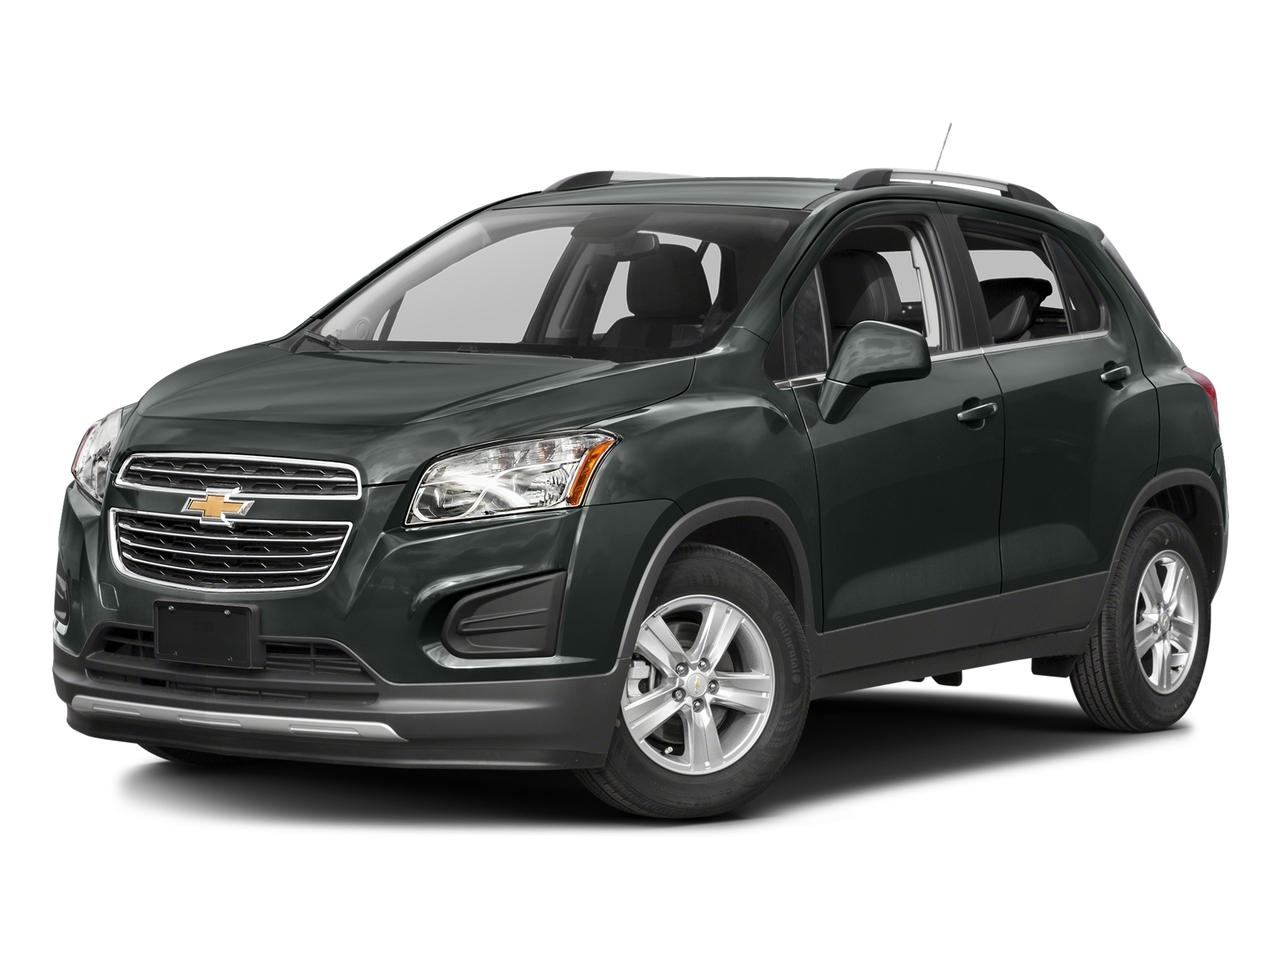 2016 Chevrolet Trax Vehicle Photo in Killeen, TX 76541